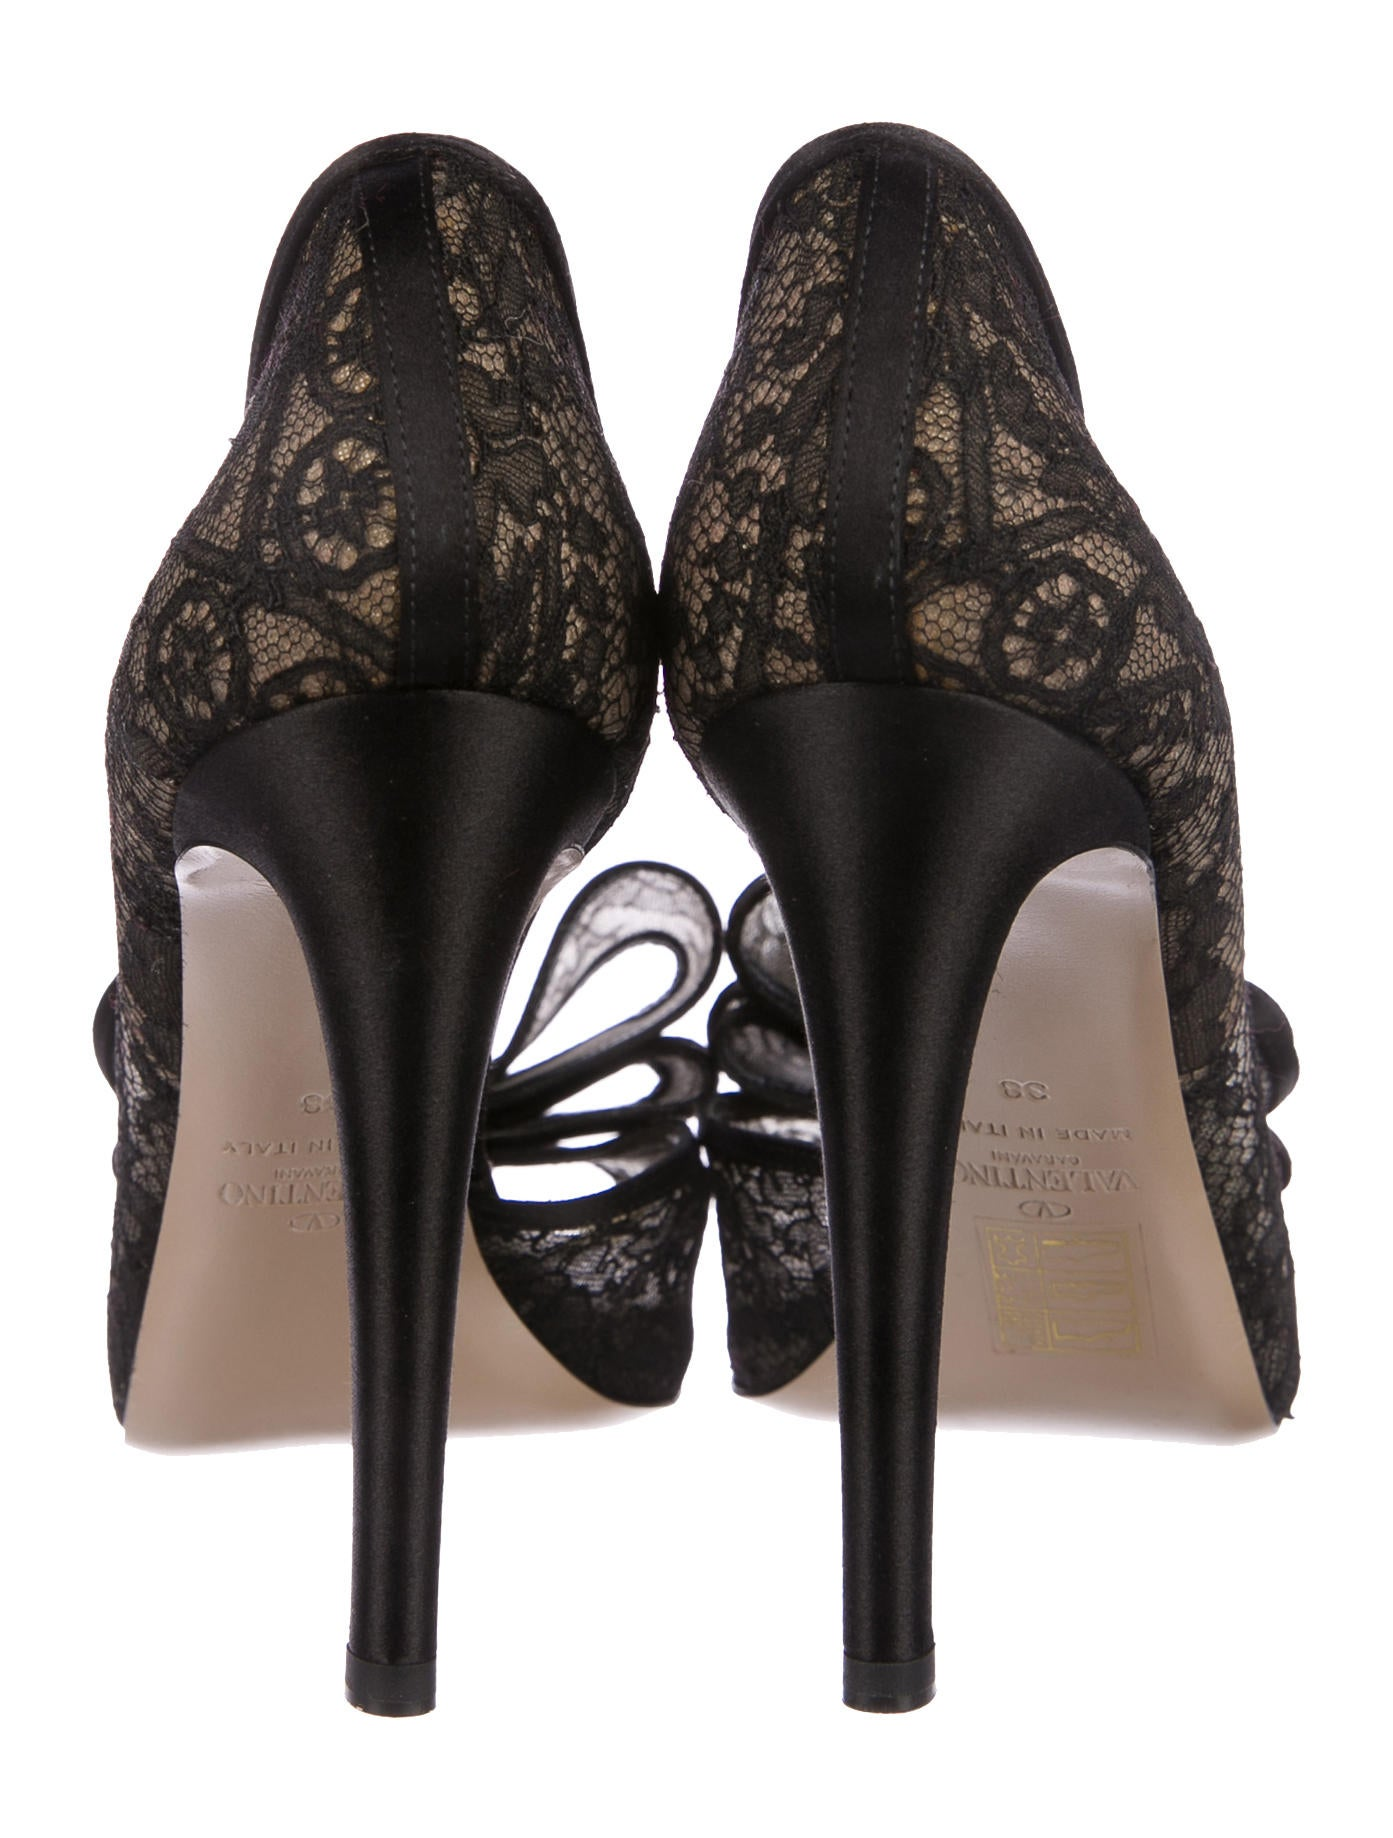 7d70a3d9fae Valentino Couture Bow Half d Orsay Pumps - Shoes - VAL76252